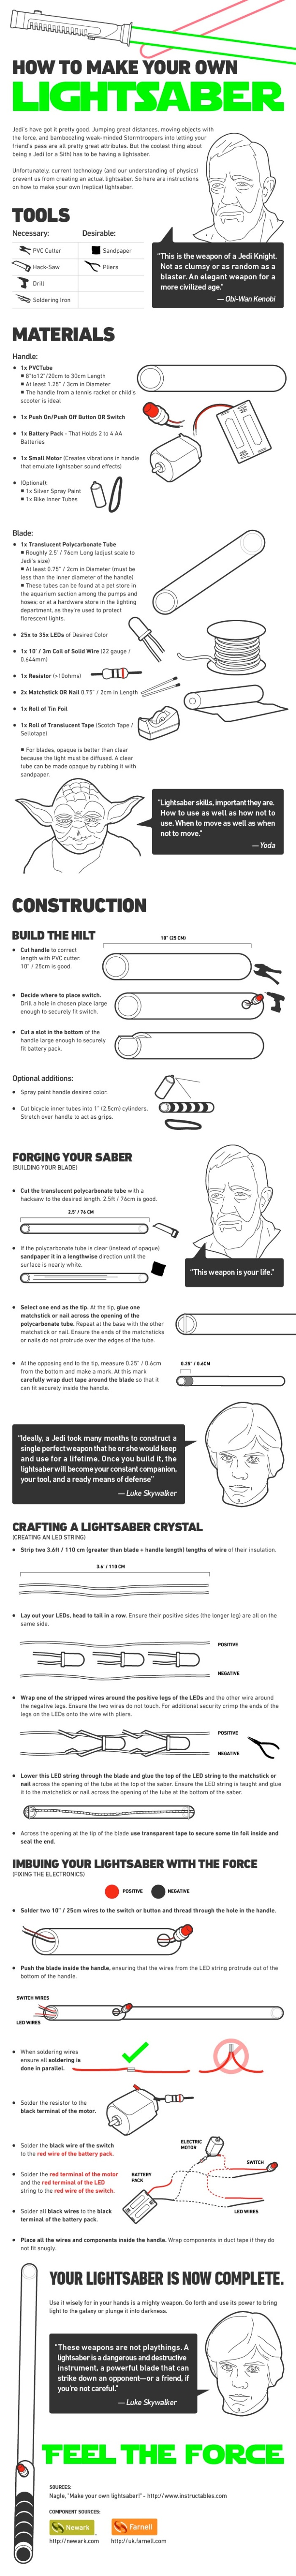 star-wars-how-to-make-a-lightsaber-infographic